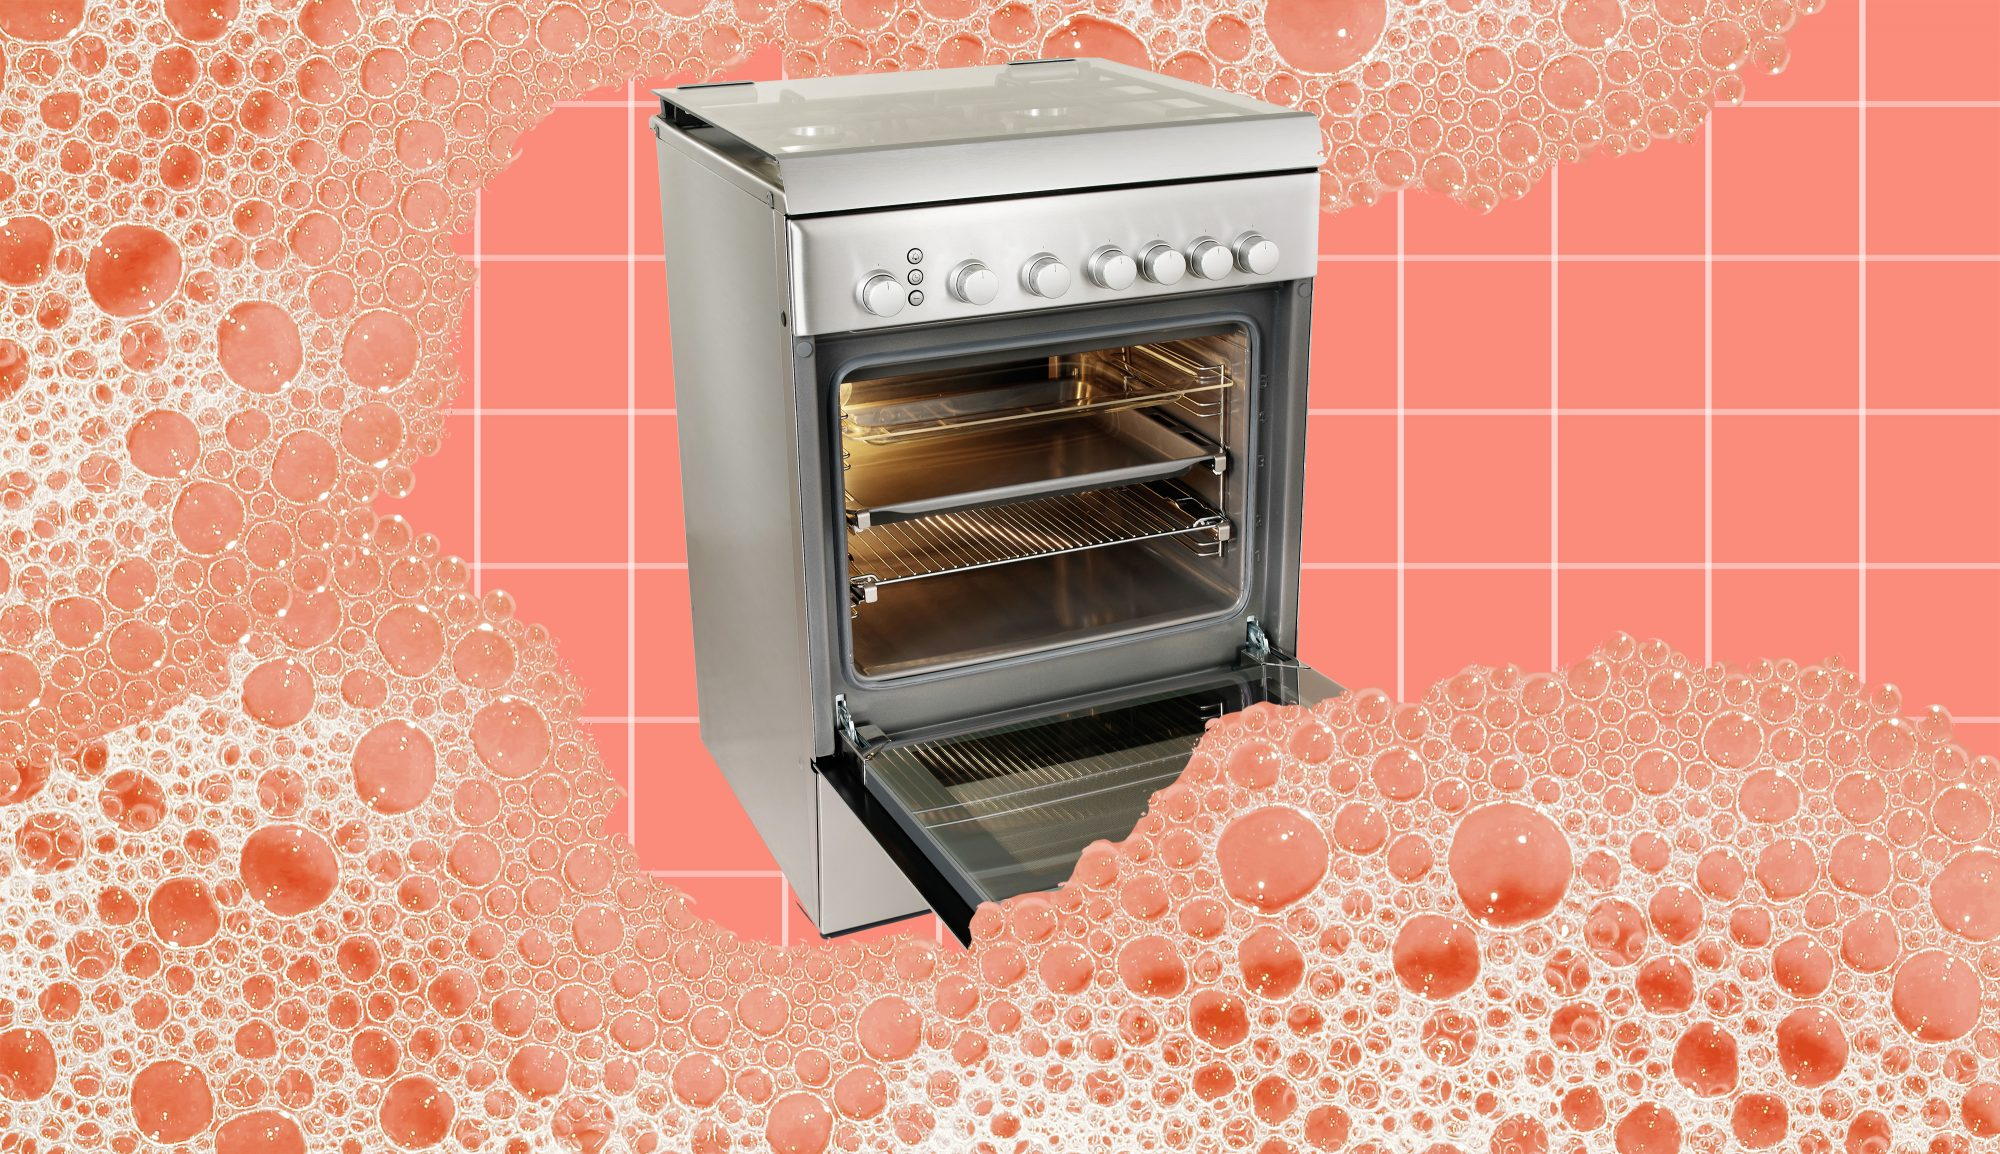 Oven-Cleaning Hacks